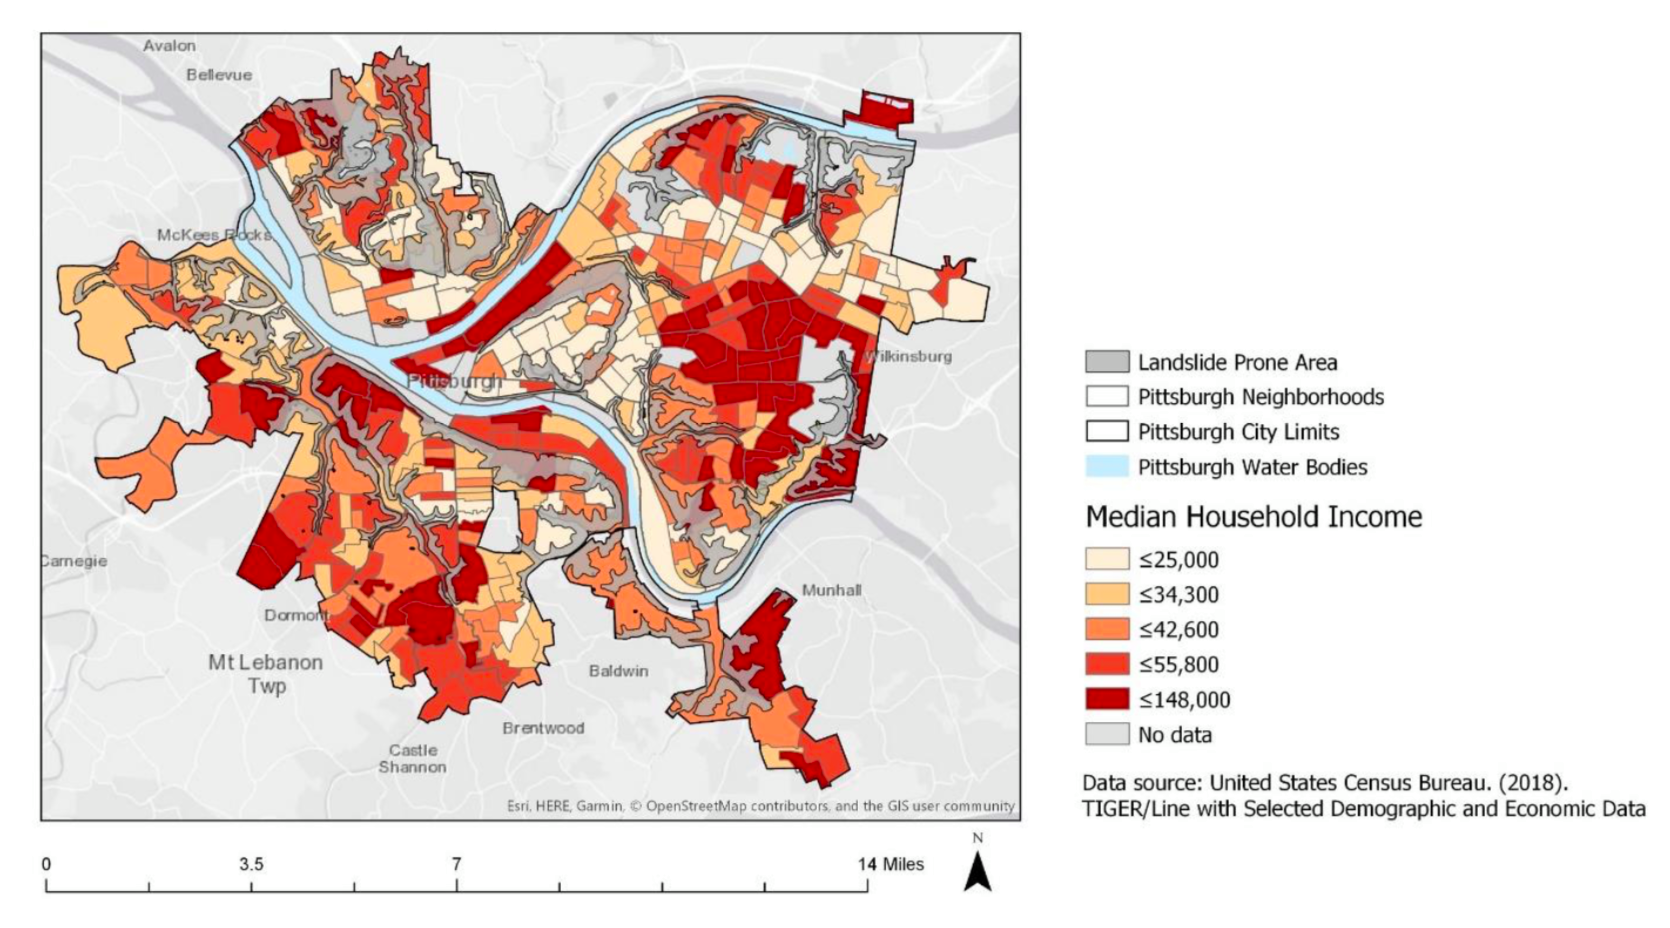 Figure 5: Median household income by Neighborhood in Pittsburgh and Landslide Prone Area Comparison by Caceres and Lopez with data from US Census Bureau and Western Pennsylvania Data Center